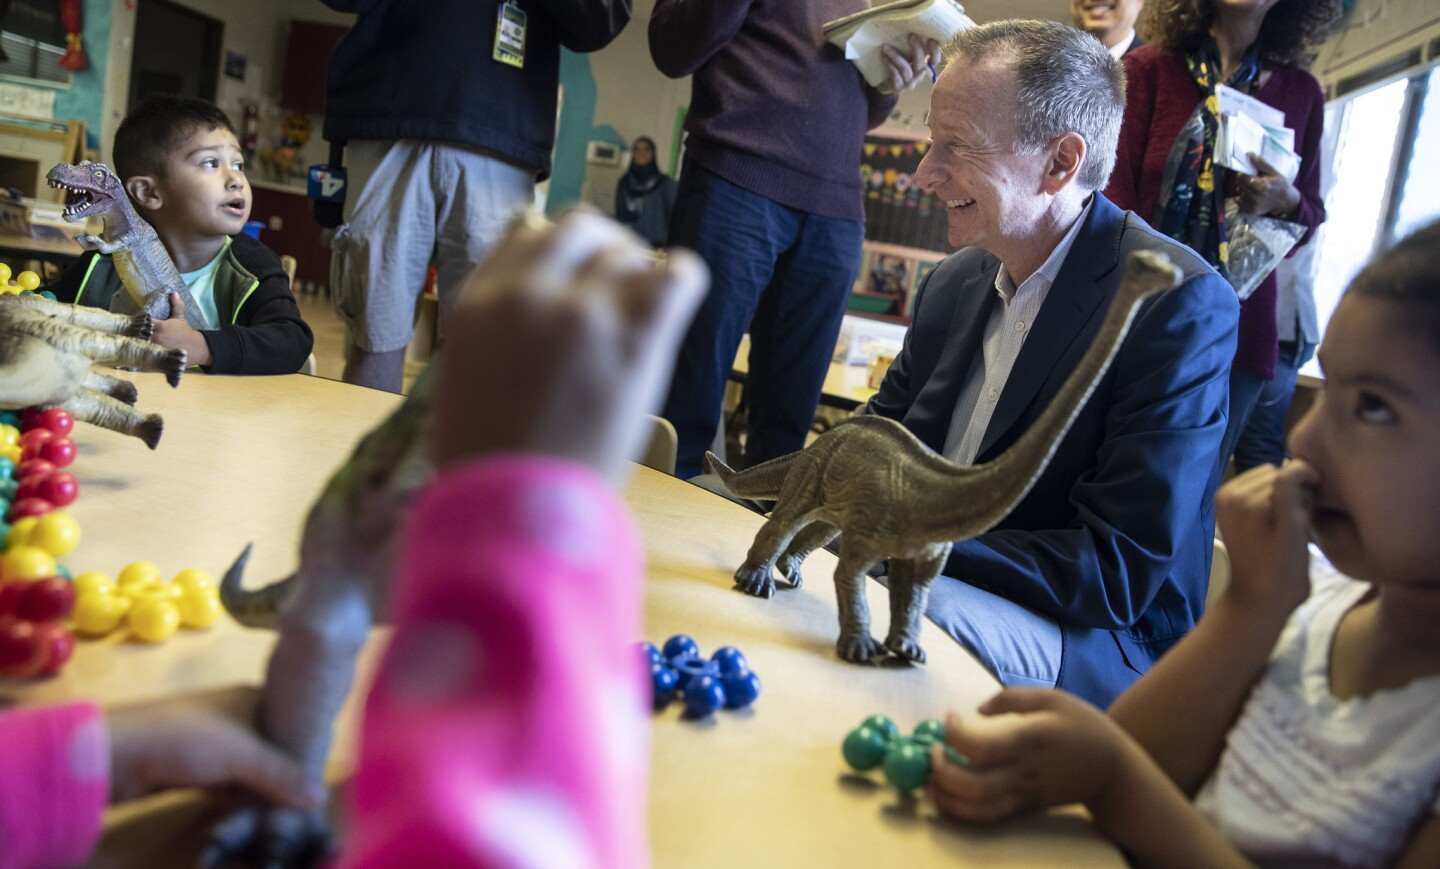 New LAUSD Supt. Austin Beutner talks with children at Cleveland Early Education Center on his first official day on the job in Los Angeles.